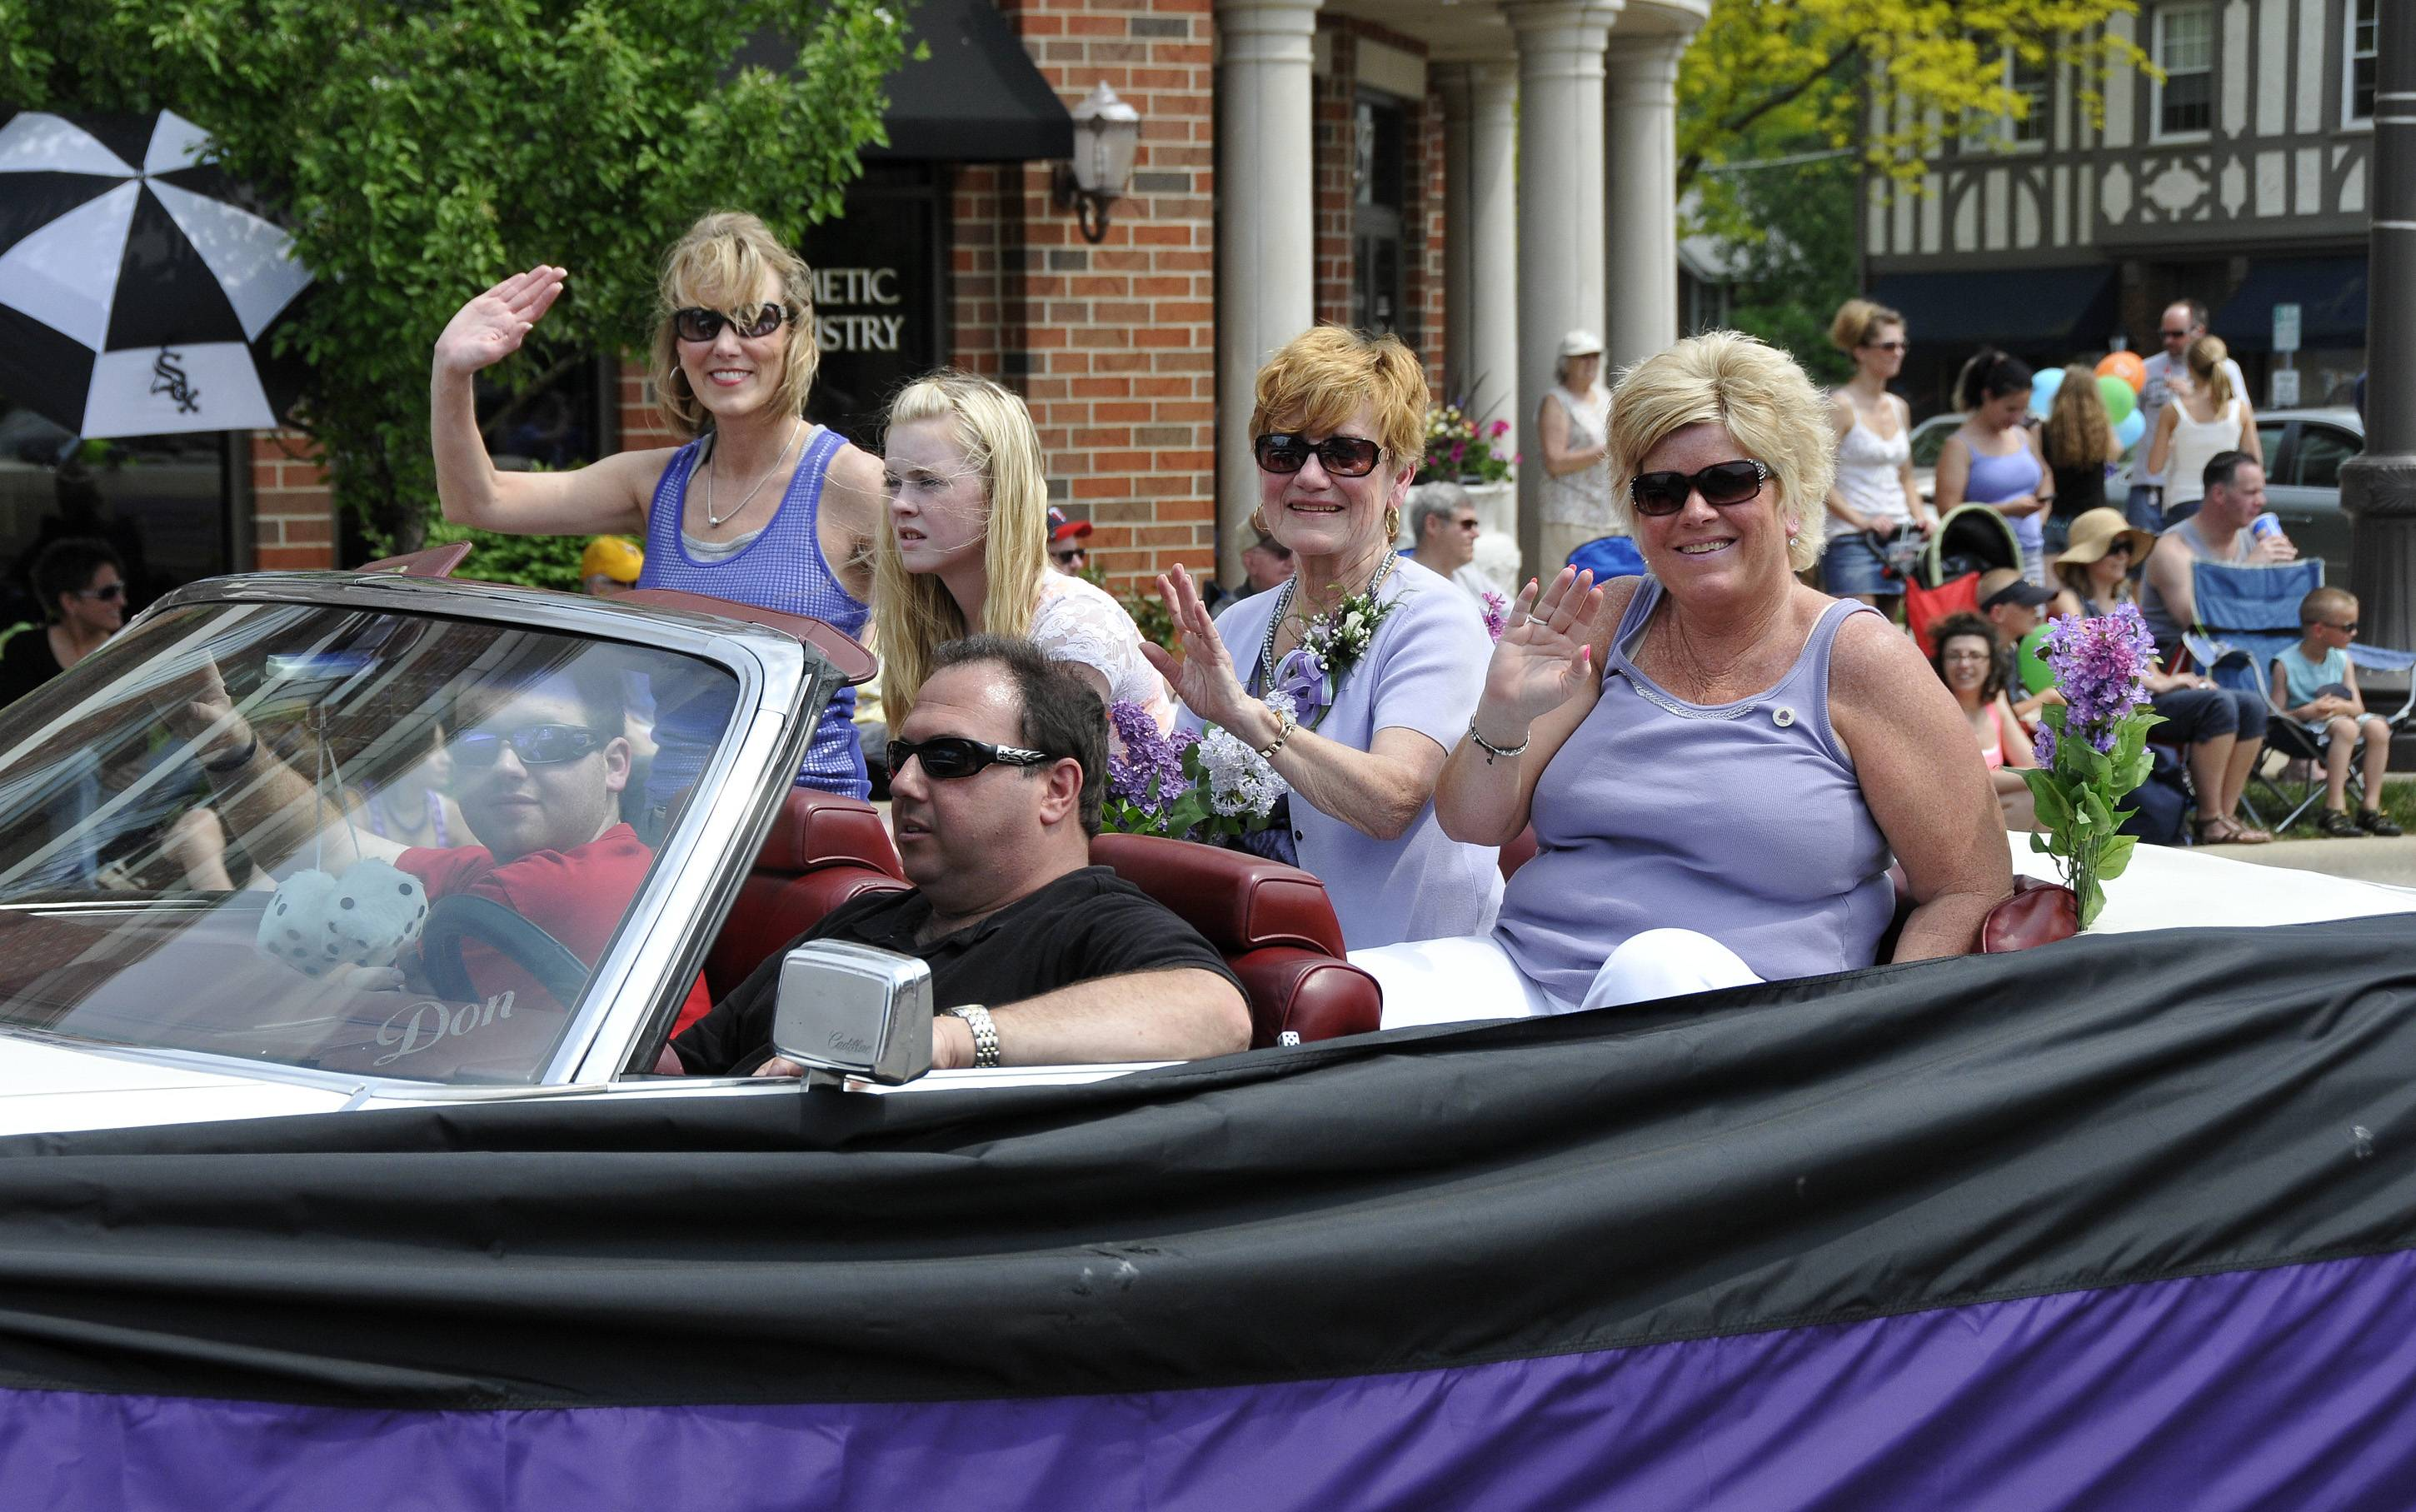 More than 100 organizations are taking part in the annual Lilac Parade this Sunday in Lombard.